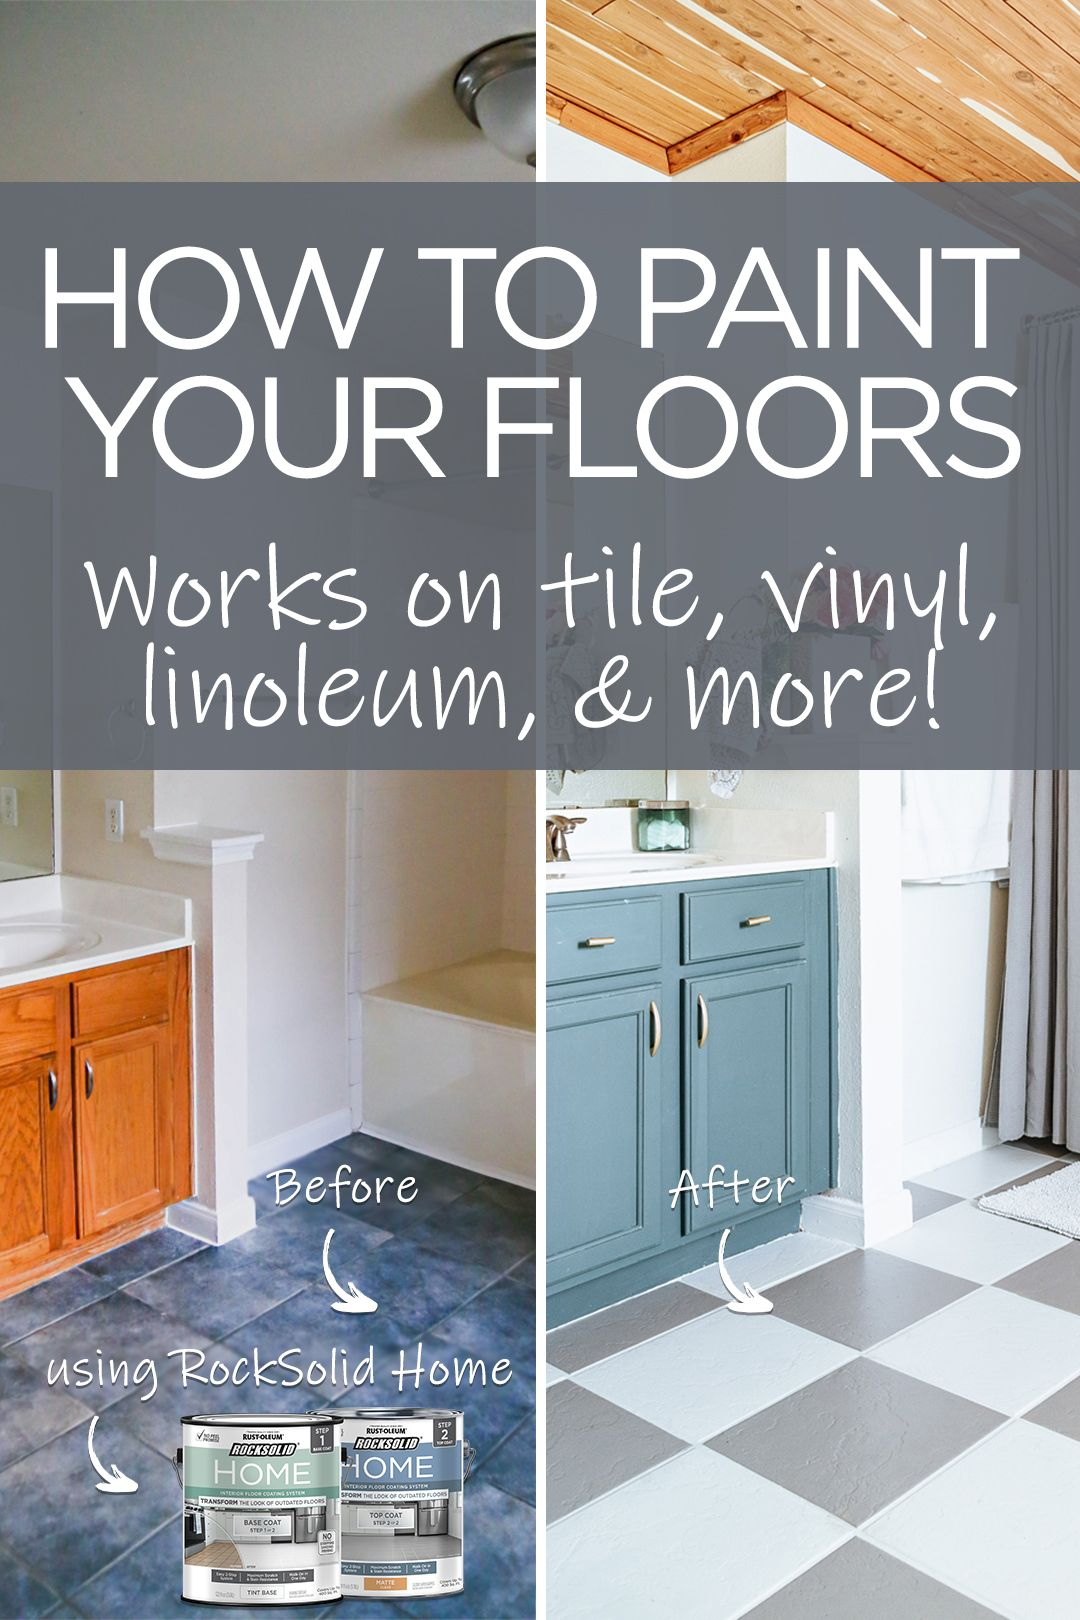 Take Your Bathroom From Dated To Dazzling In A Day By Painting Your Floor This Easy Diy Project Works On Tile Diy Home Repair Home Renovation Home Remodeling